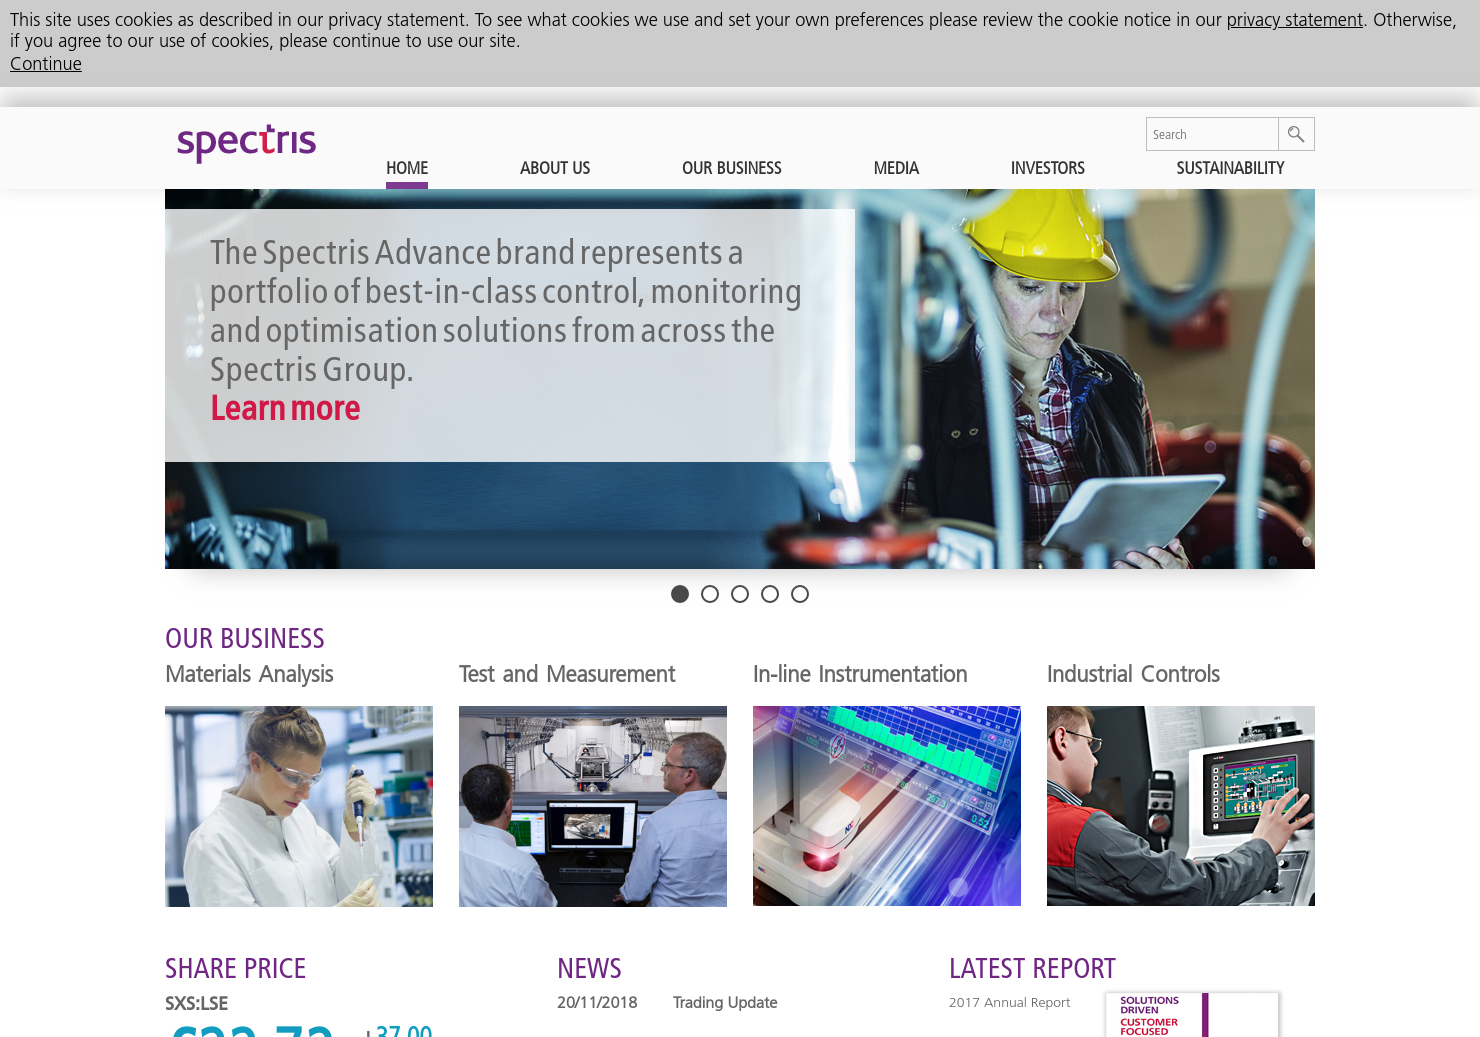 Spectris Home Page